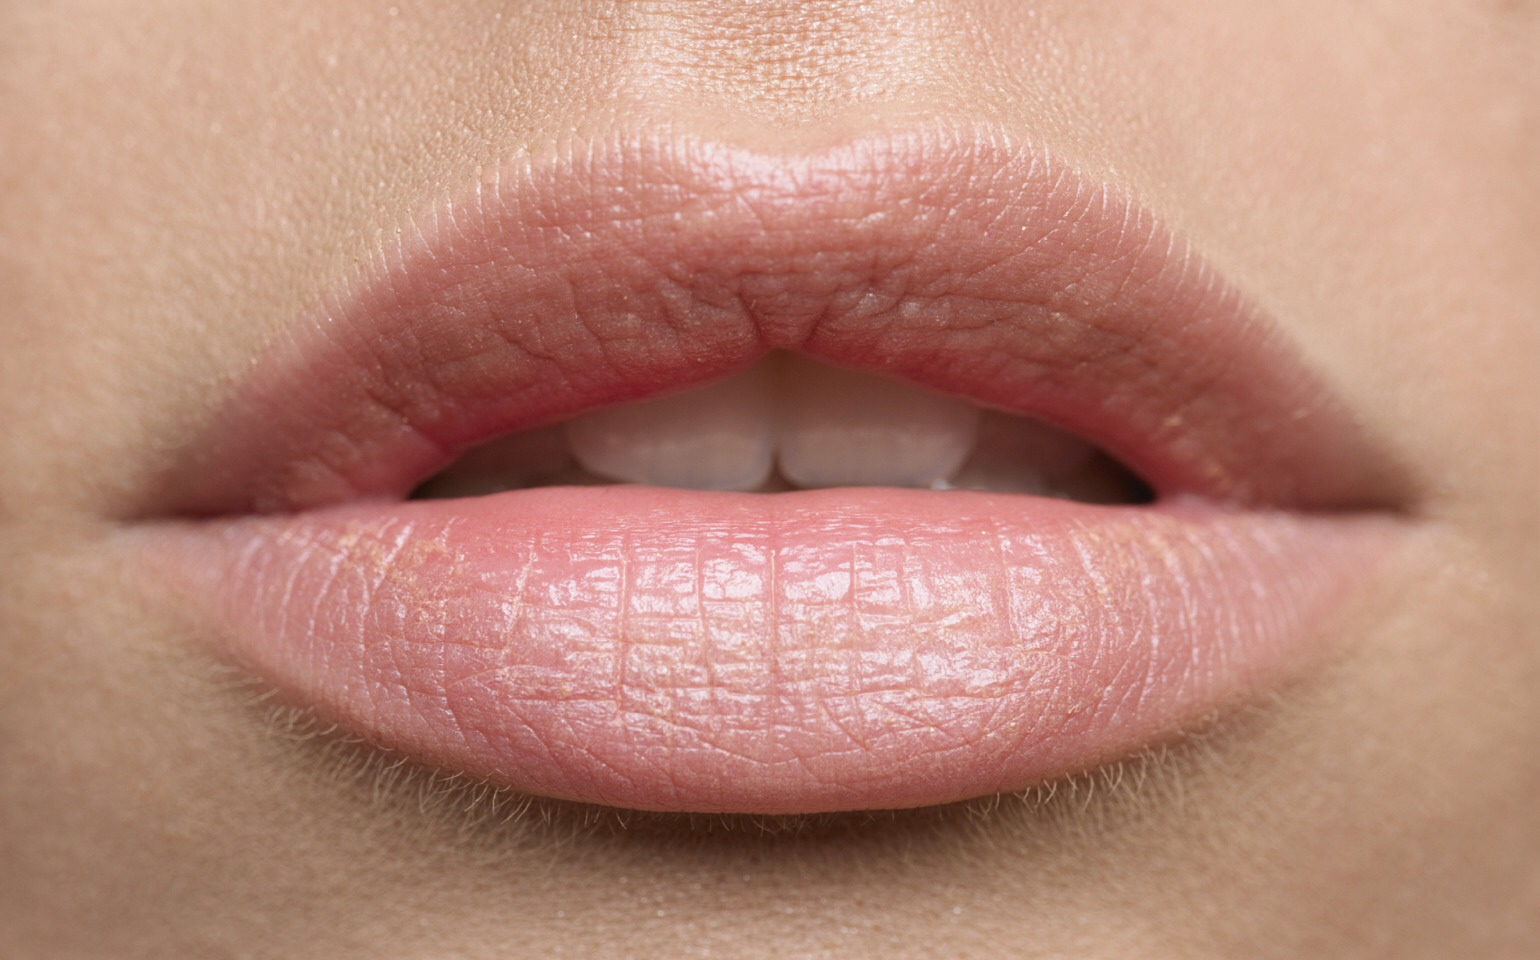 Lips: rub coconut oil or Vaseline on them. Exfoliate gently with a wet toothbrush. Once the dead skin is removed rub more coconut oil or Vaseline on them.